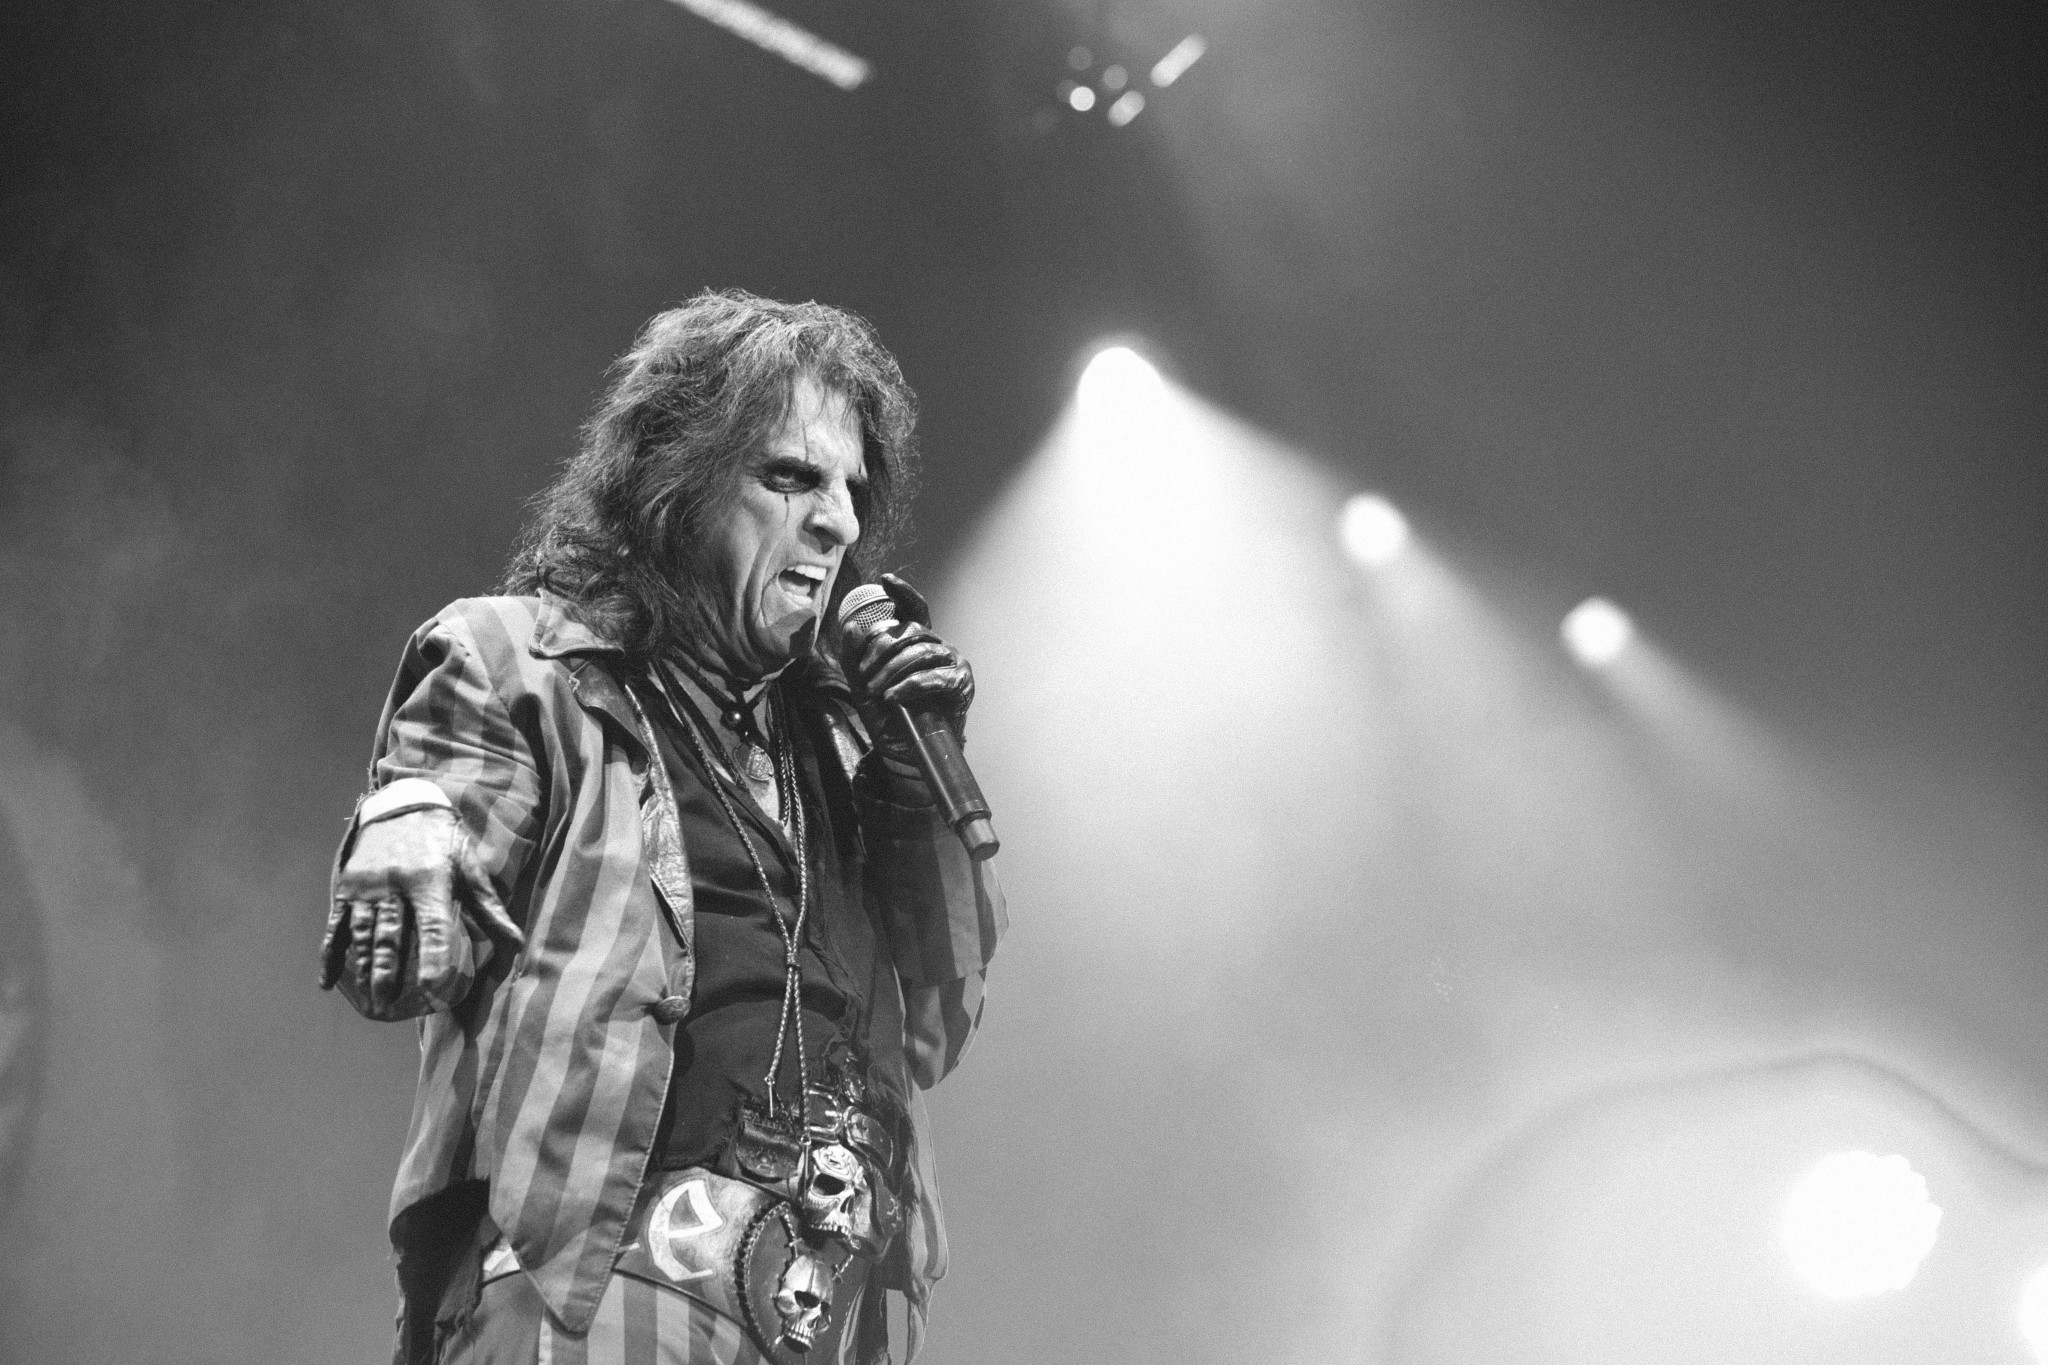 Alice Cooper live at Genting Arena, Birmingham, Britain - 4 Nov 2015